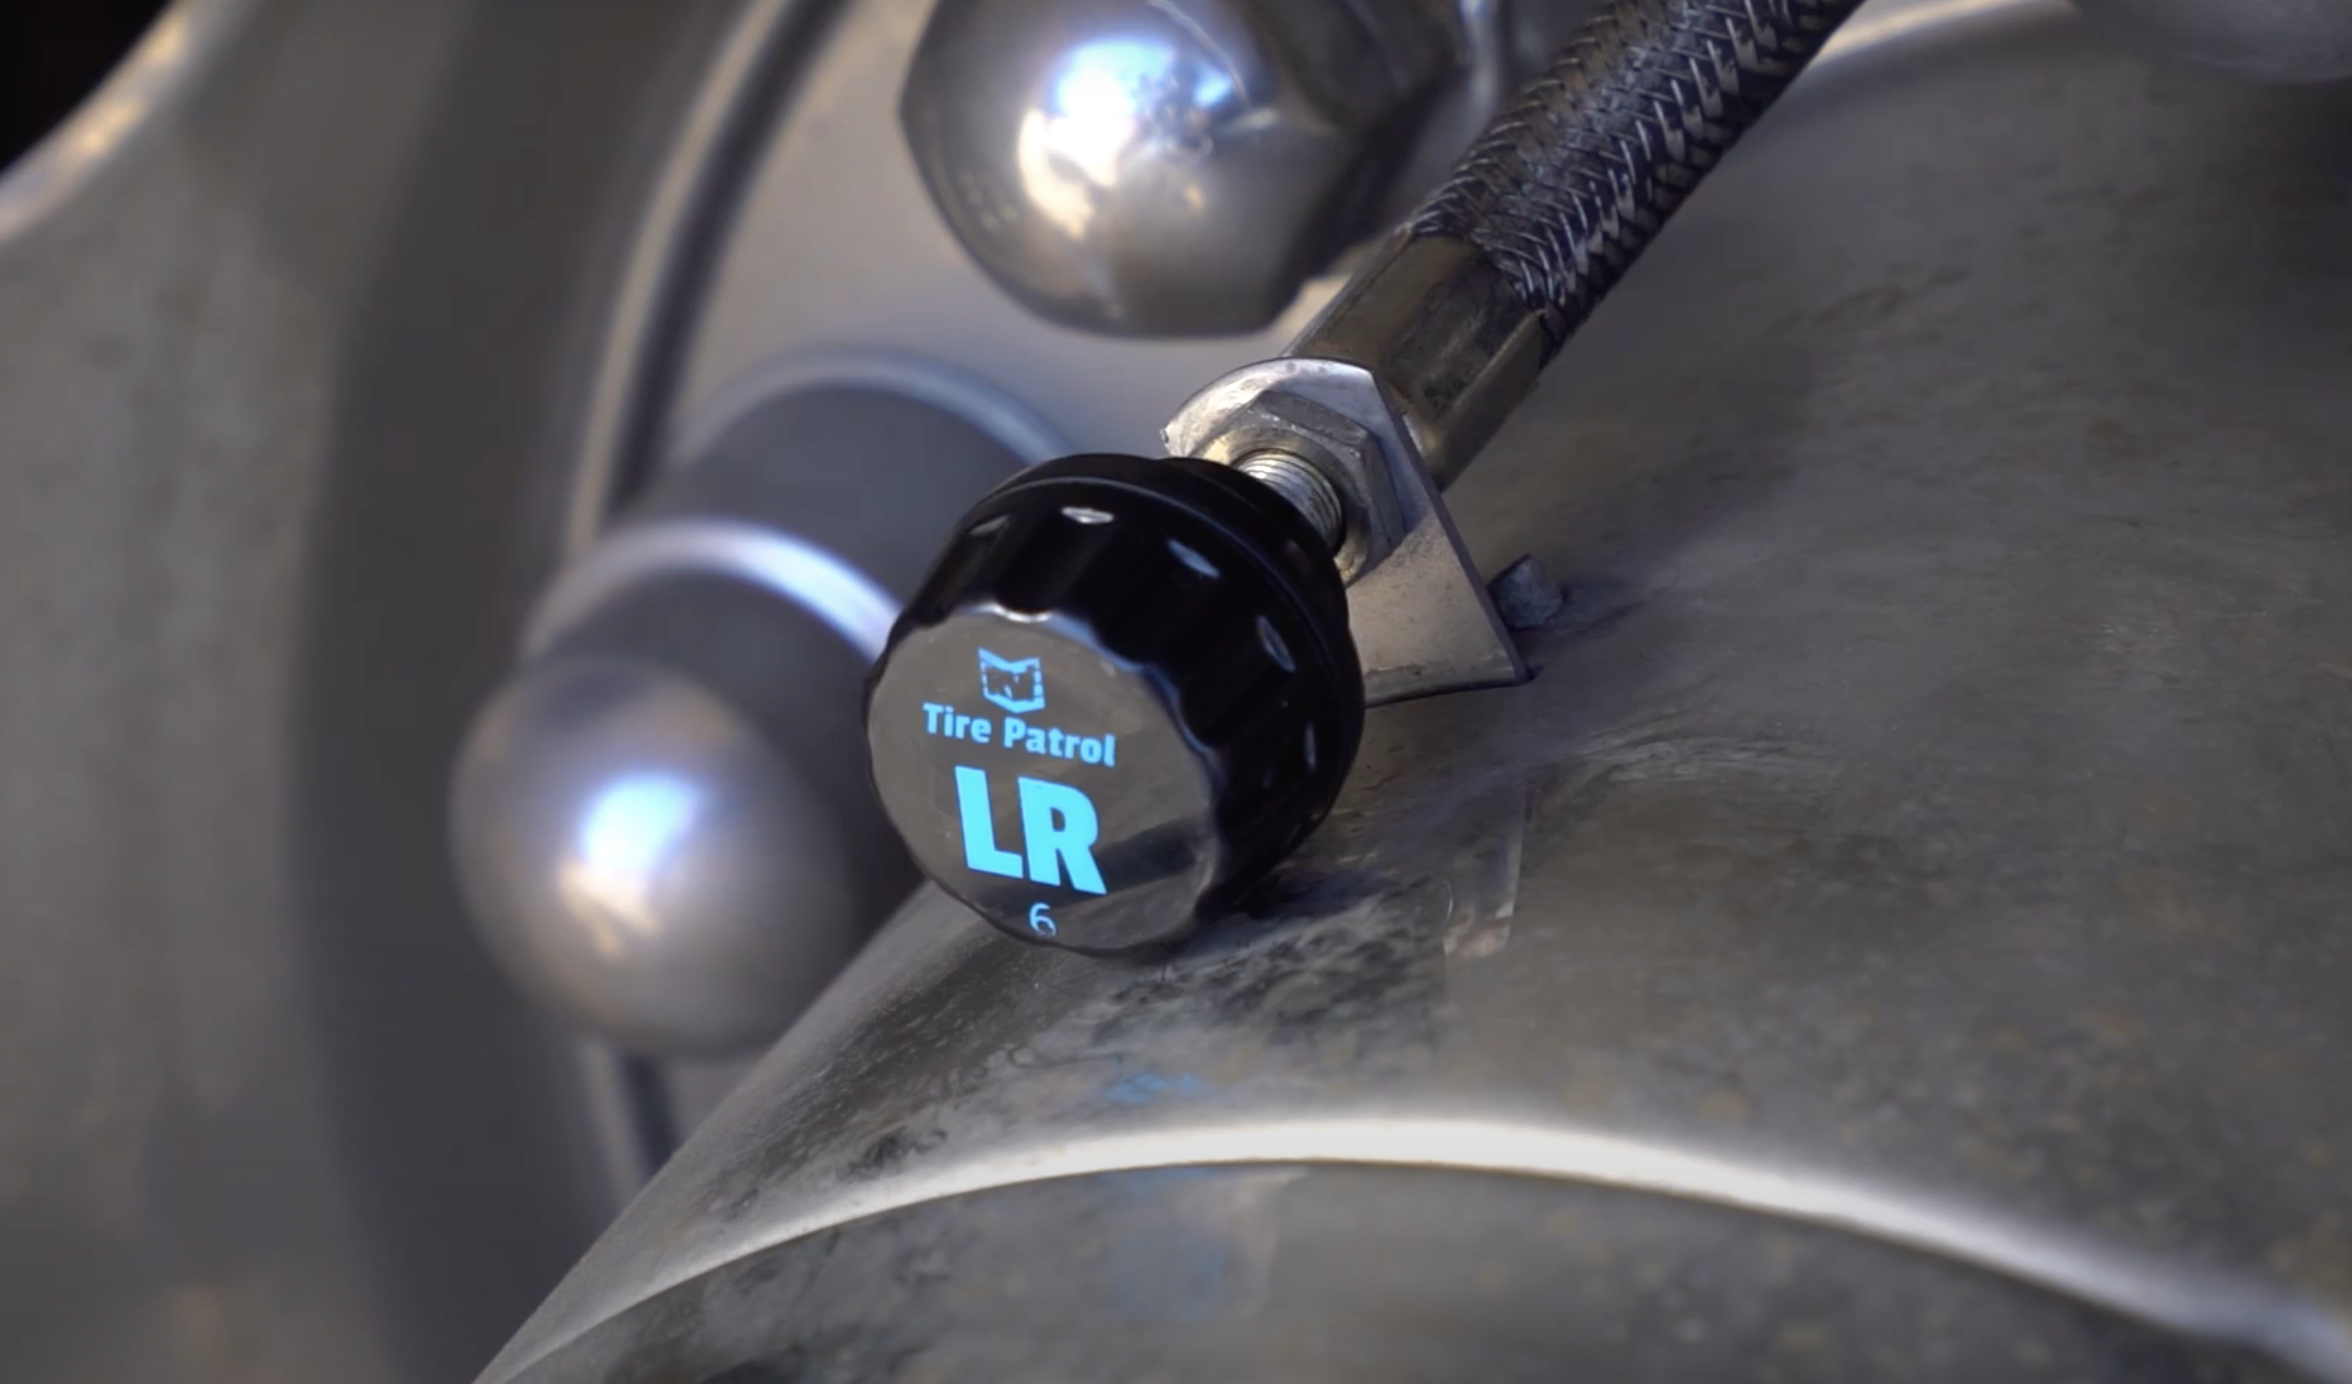 RVi Tire Pressure Monitoring System for RVing & flat towing